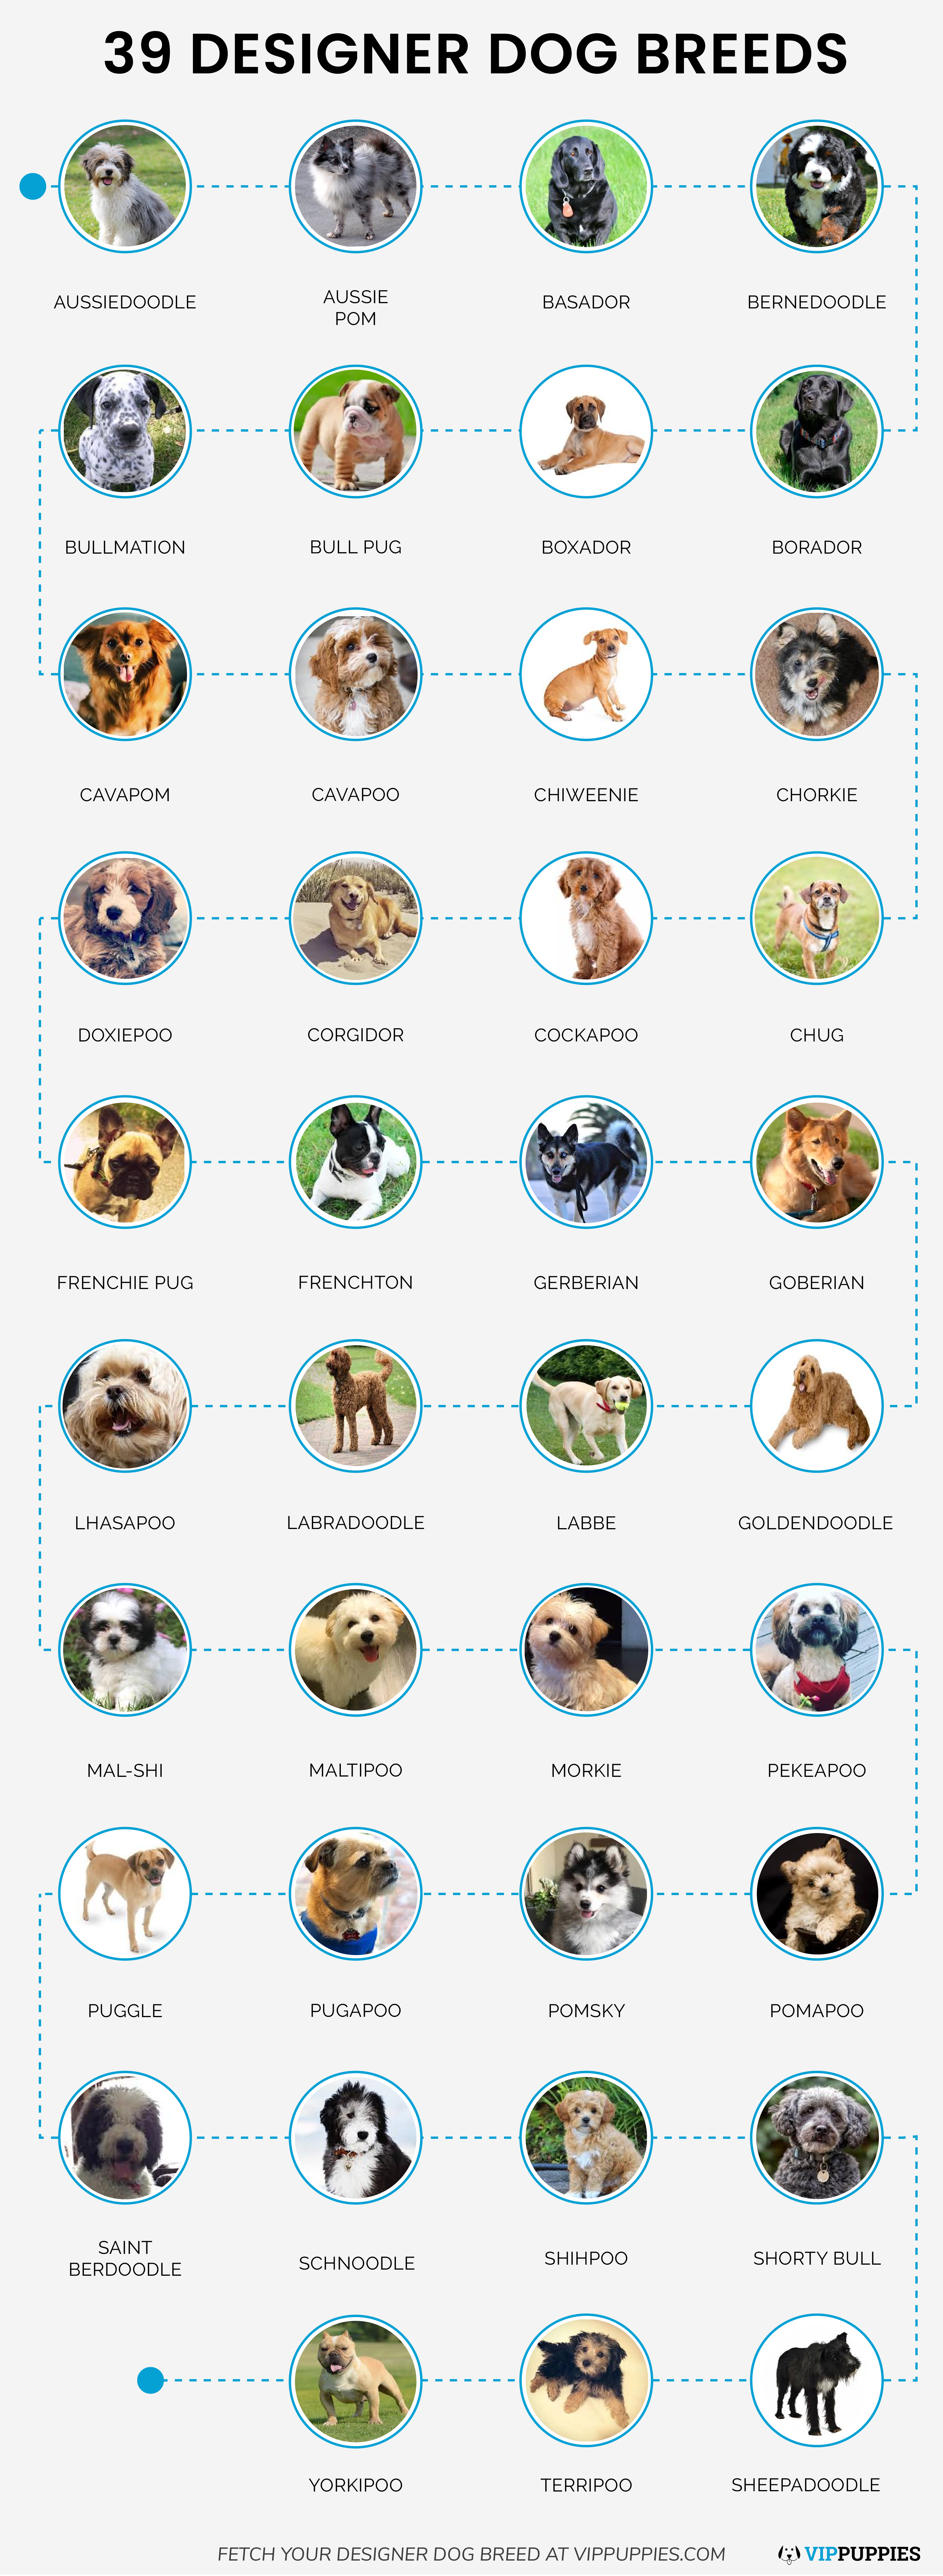 39 Designer Dog Breeds Infographic